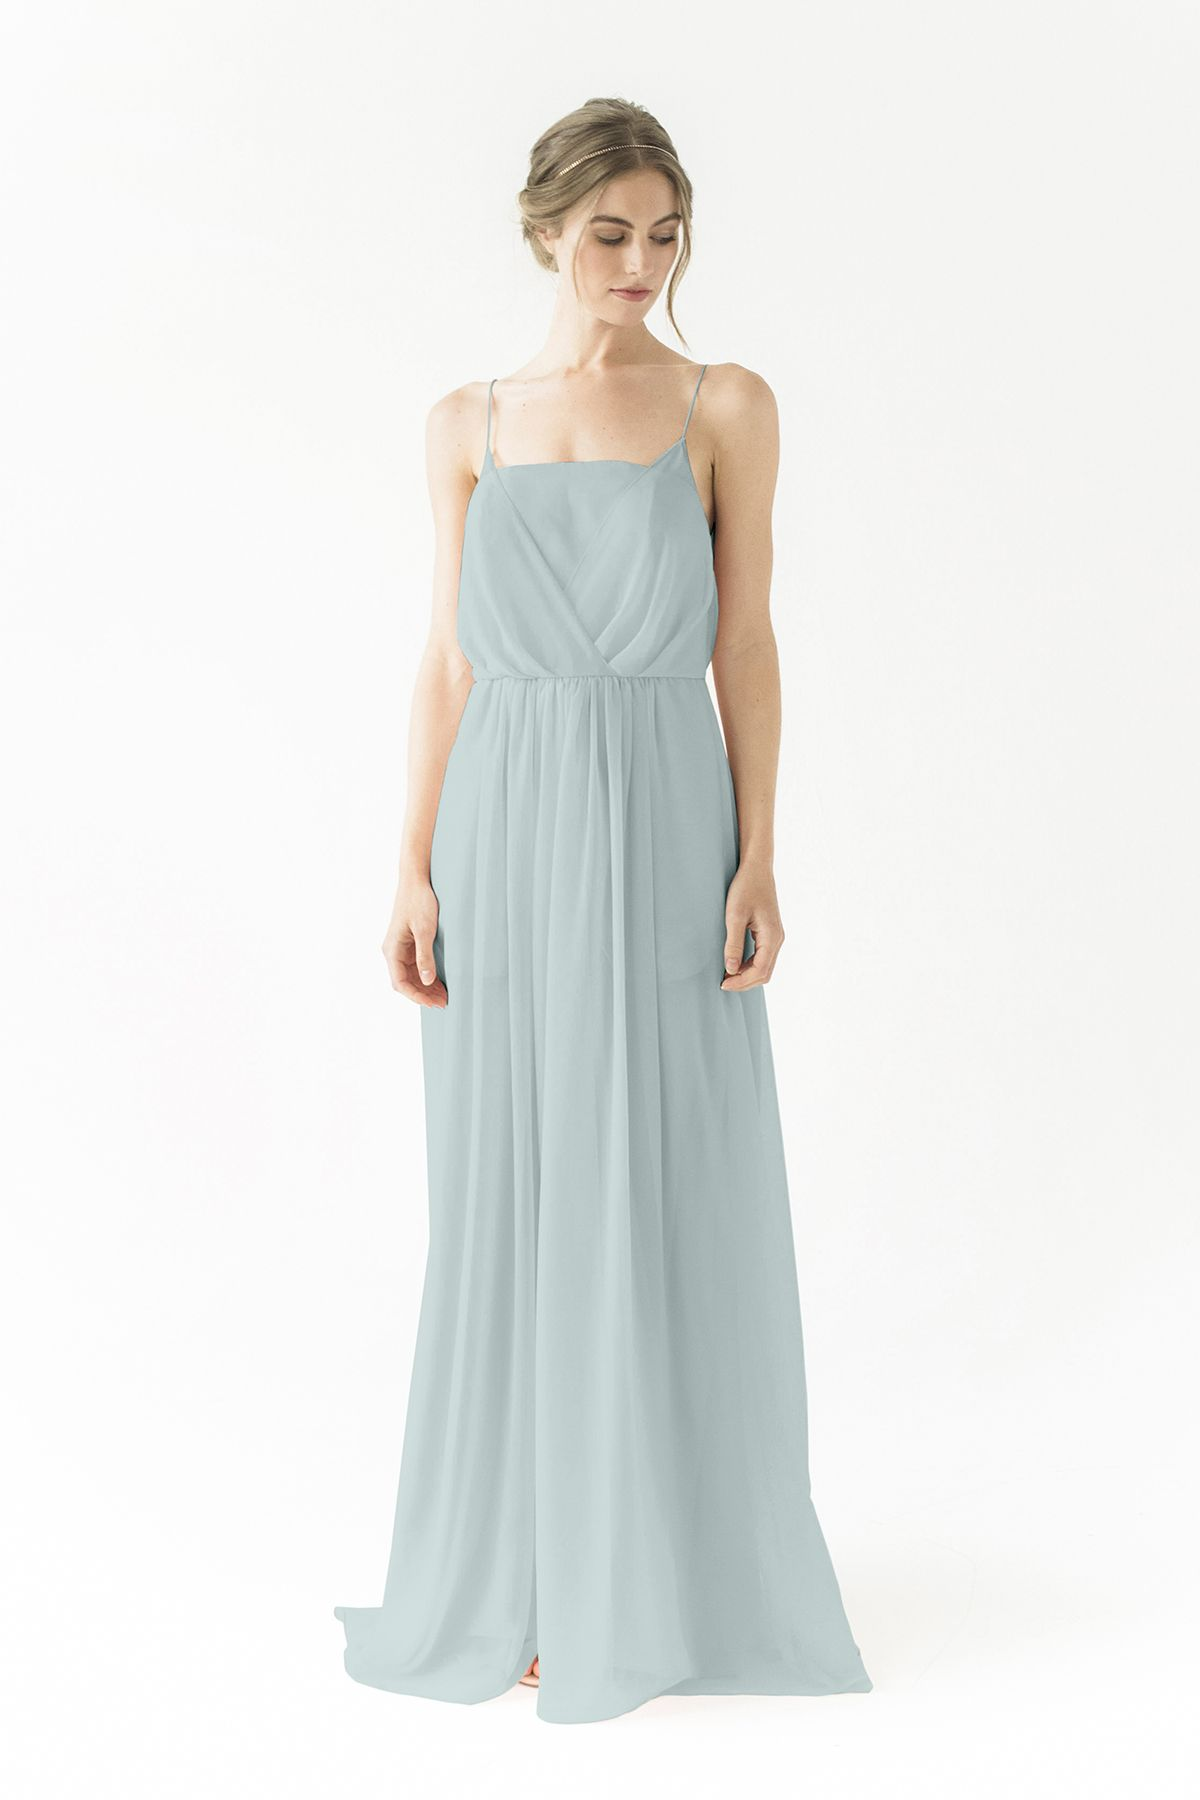 224dd35e82 Find the perfect made-to-order bridesmaid dresses for your bridal party in your  favorite color